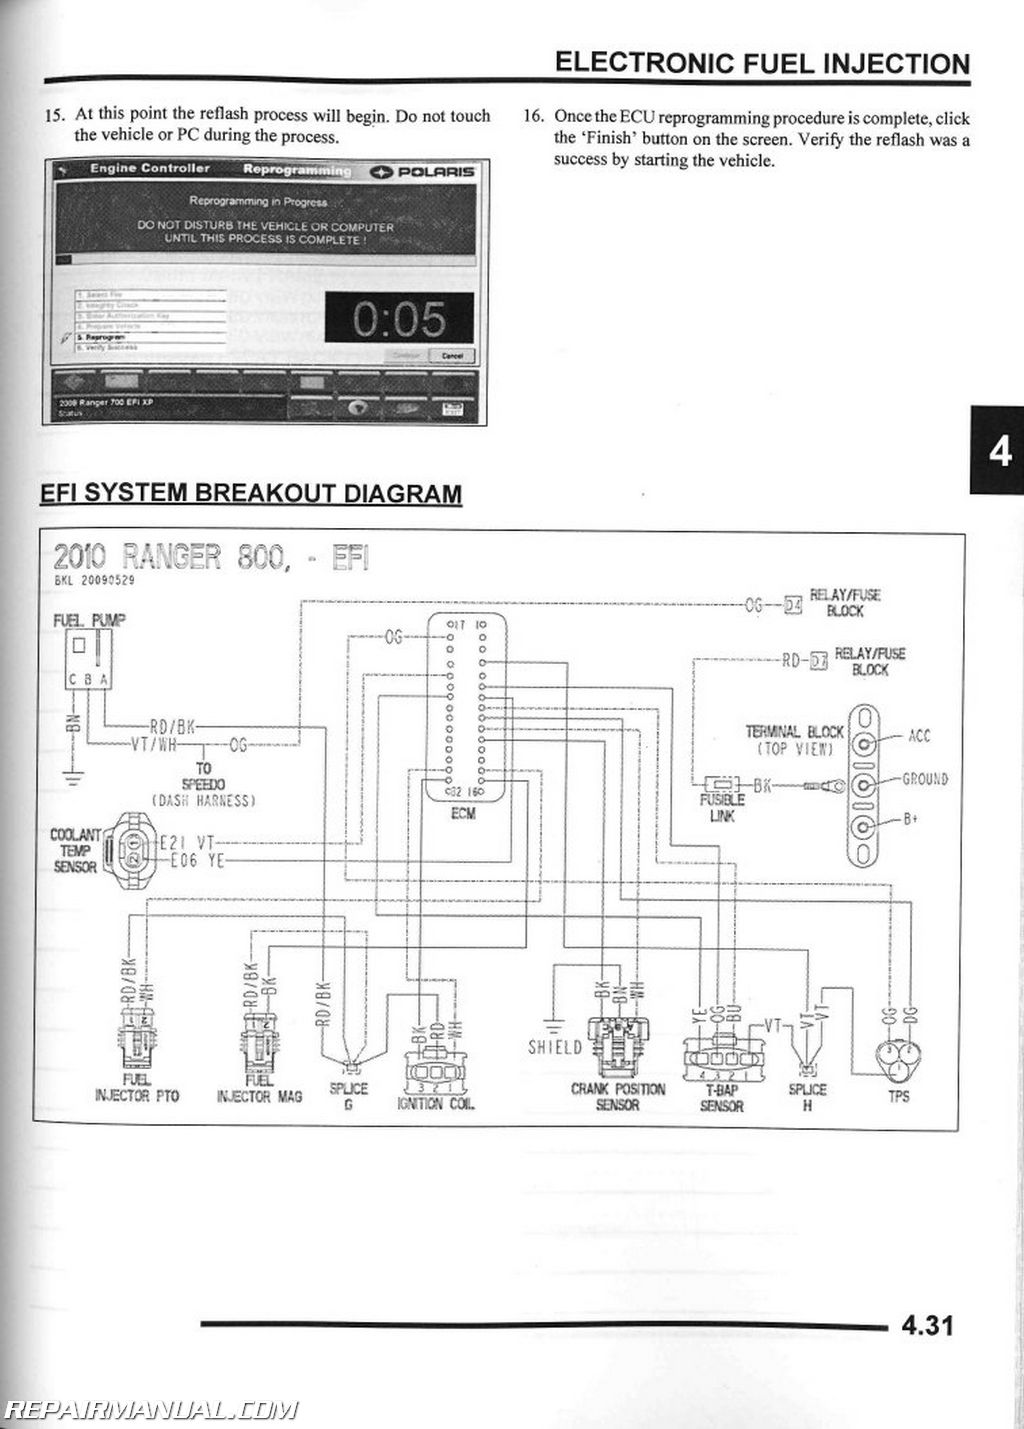 2008 Polaris Ranger 700 Xp Wiring Diagram: Cute Wiring Diagram For Polaris  Ranger 800 Xp